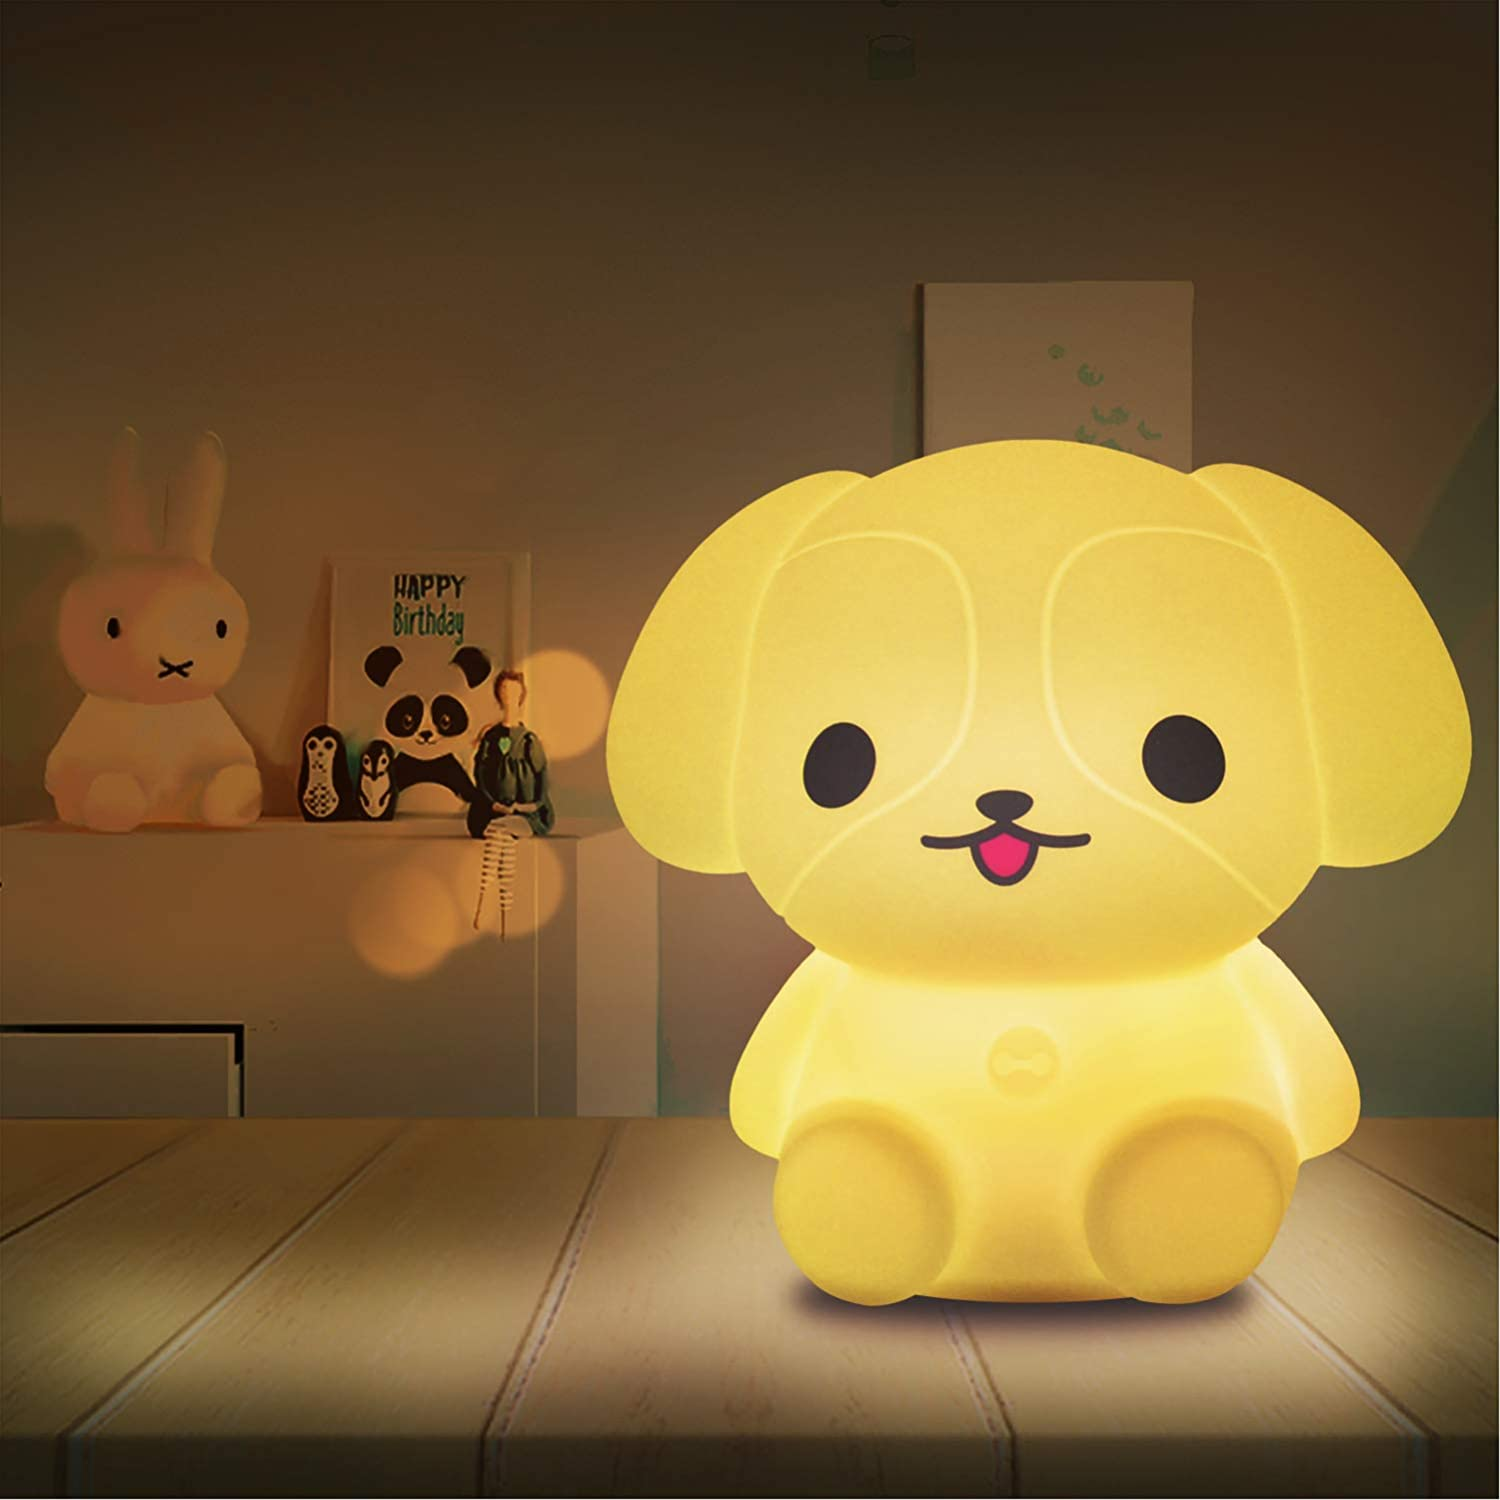 Night Light for Kids-LED Lamp for Babies Kawaii Room Decor with Remote Control-Cute Puppy Animal Lamp for Boys,Teen Girls,Gift for Christmas,Color Changing Portable Remote Control